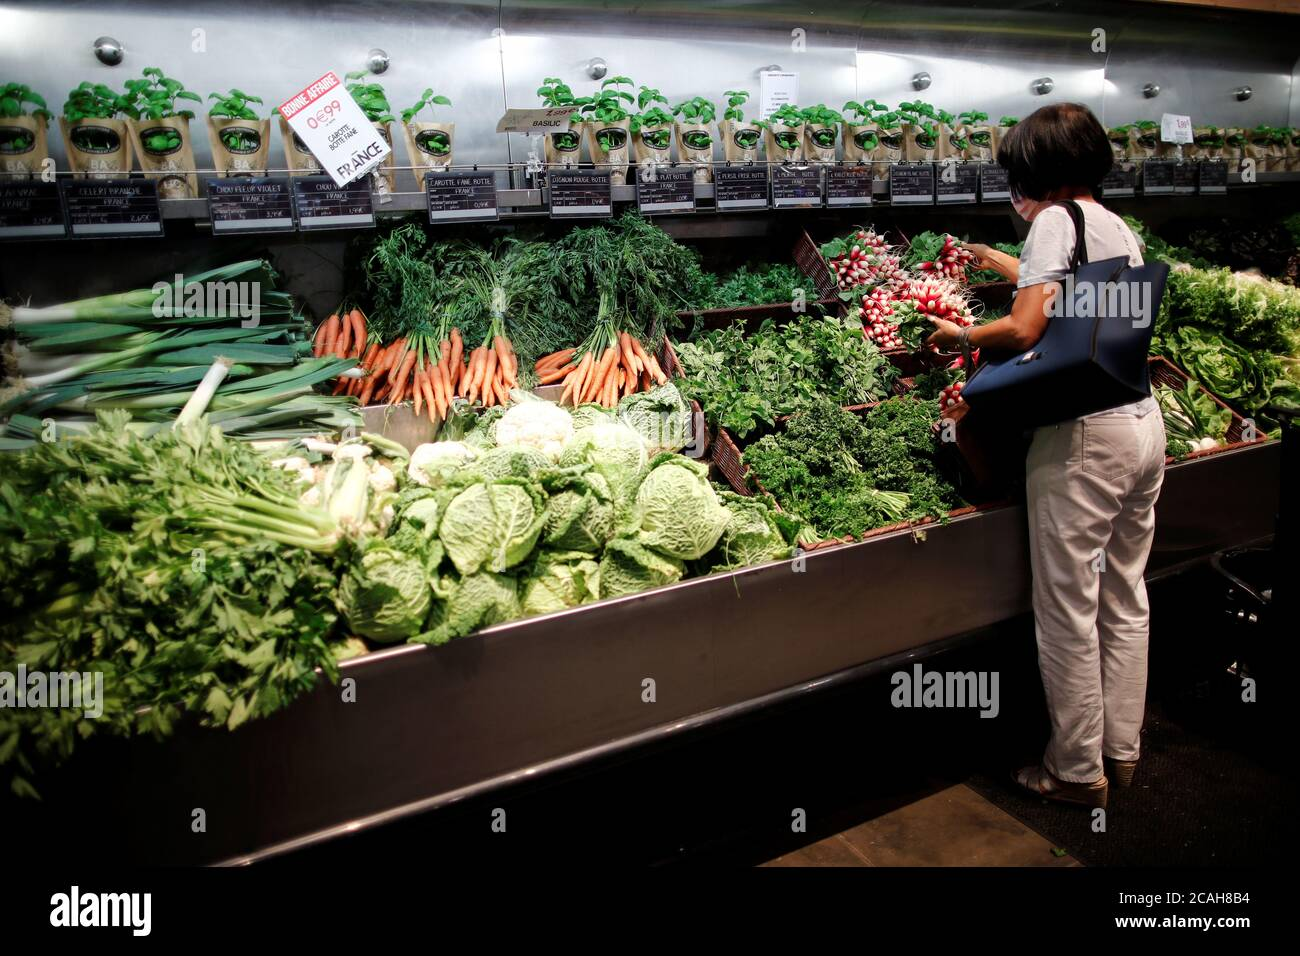 A Customer Browses Products Inside A Monoprix Supermarket Operated By Casino Group Following The Outbreak Of The Coronavirus Disease Covid 19 In Paris France August 7 2020 Reuters Benoit Tessier Stock Photo Alamy